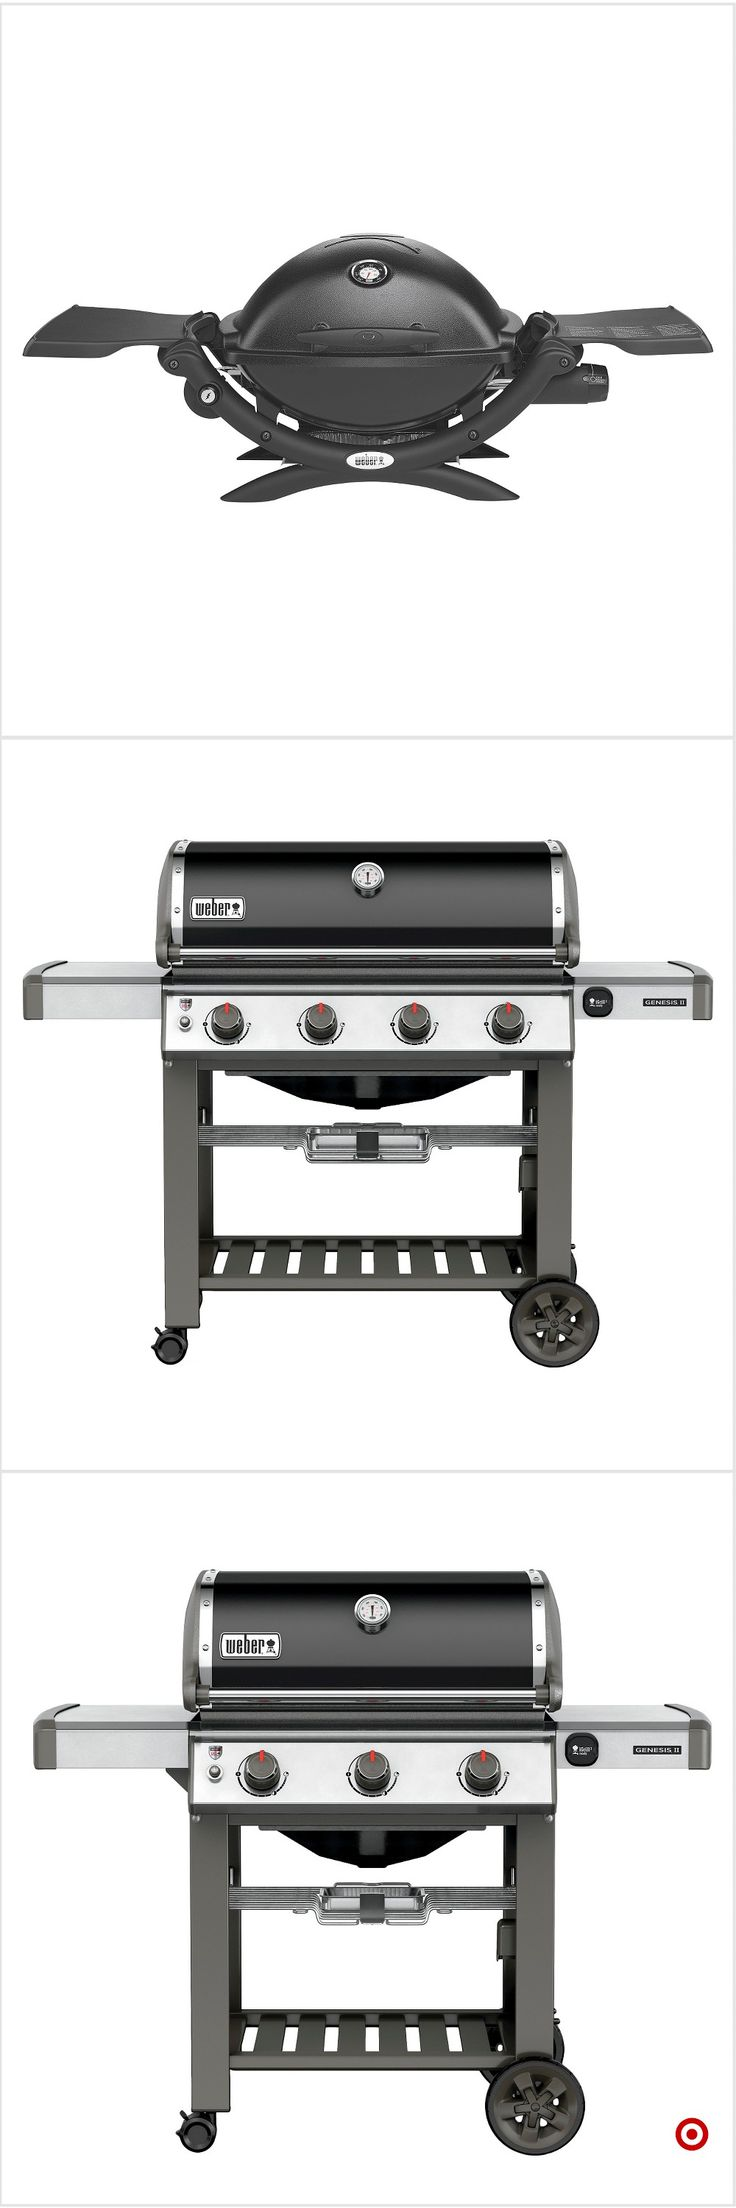 best 25 grill prices ideas on pinterest i grill bbq food list